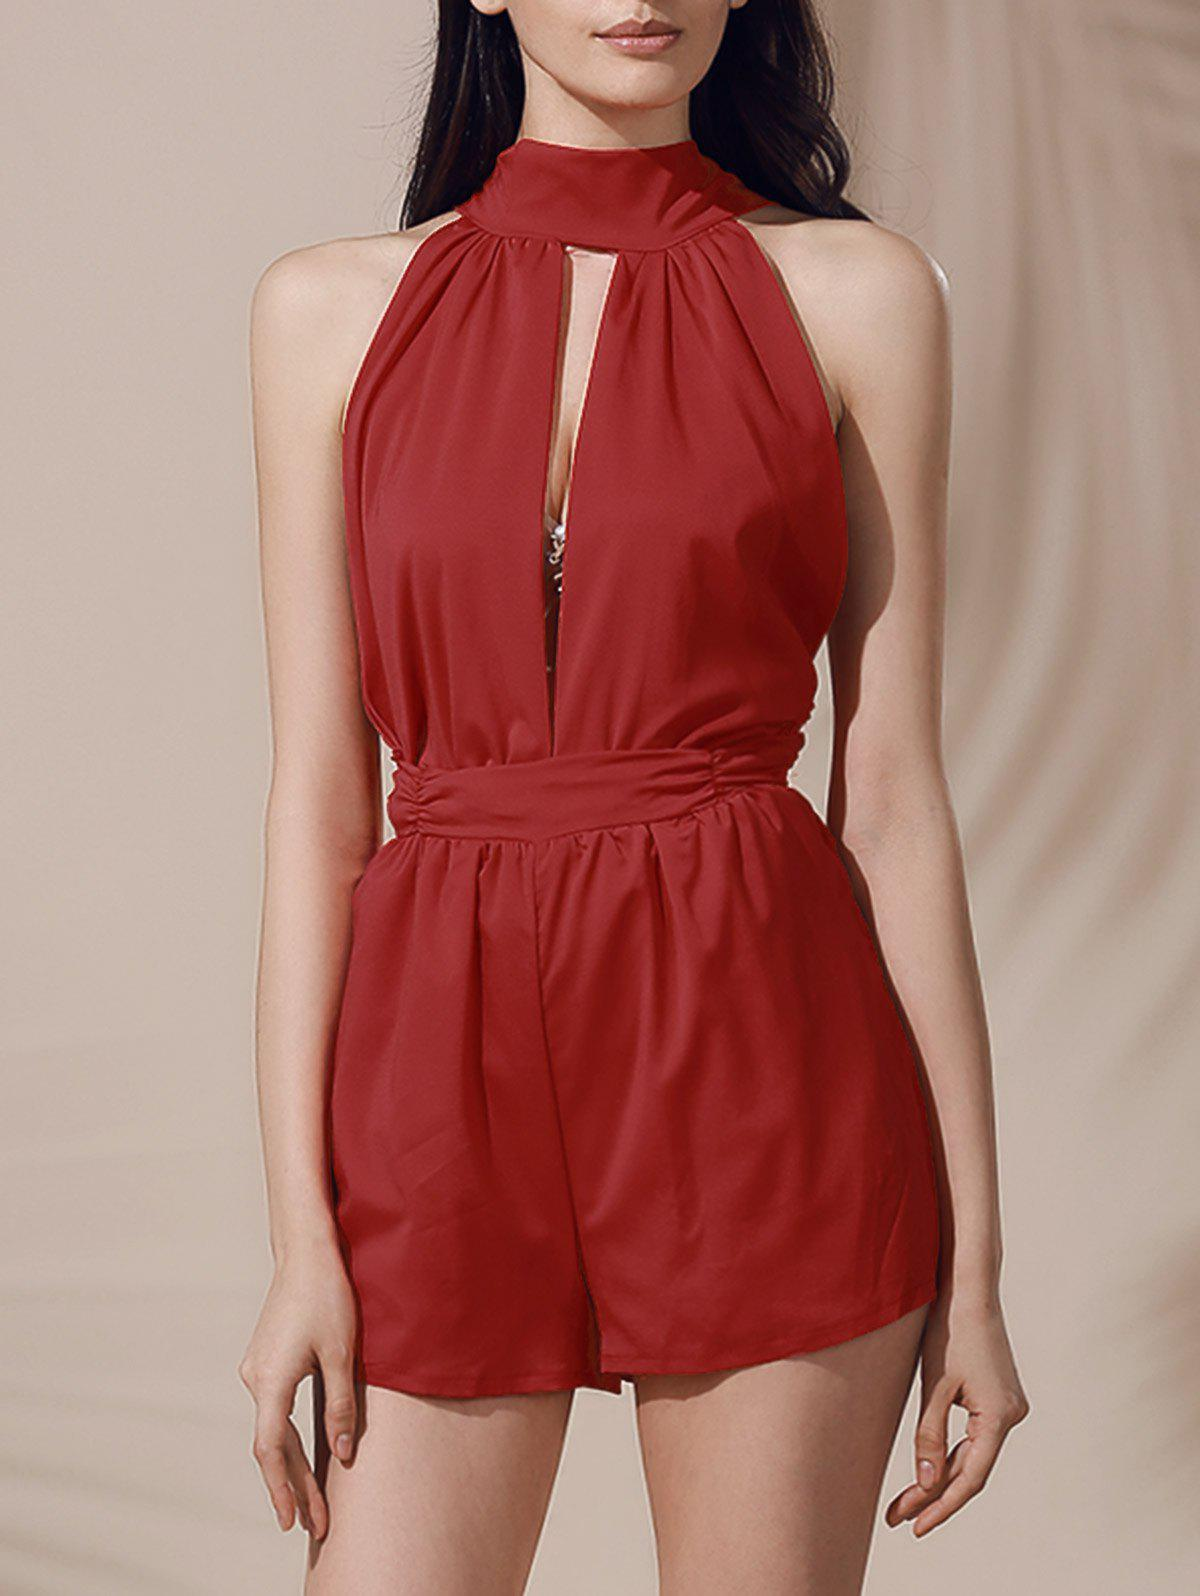 Fashionable Sleeveless Backless Pure Color Cut Out Women's Romper - DEEP RED M